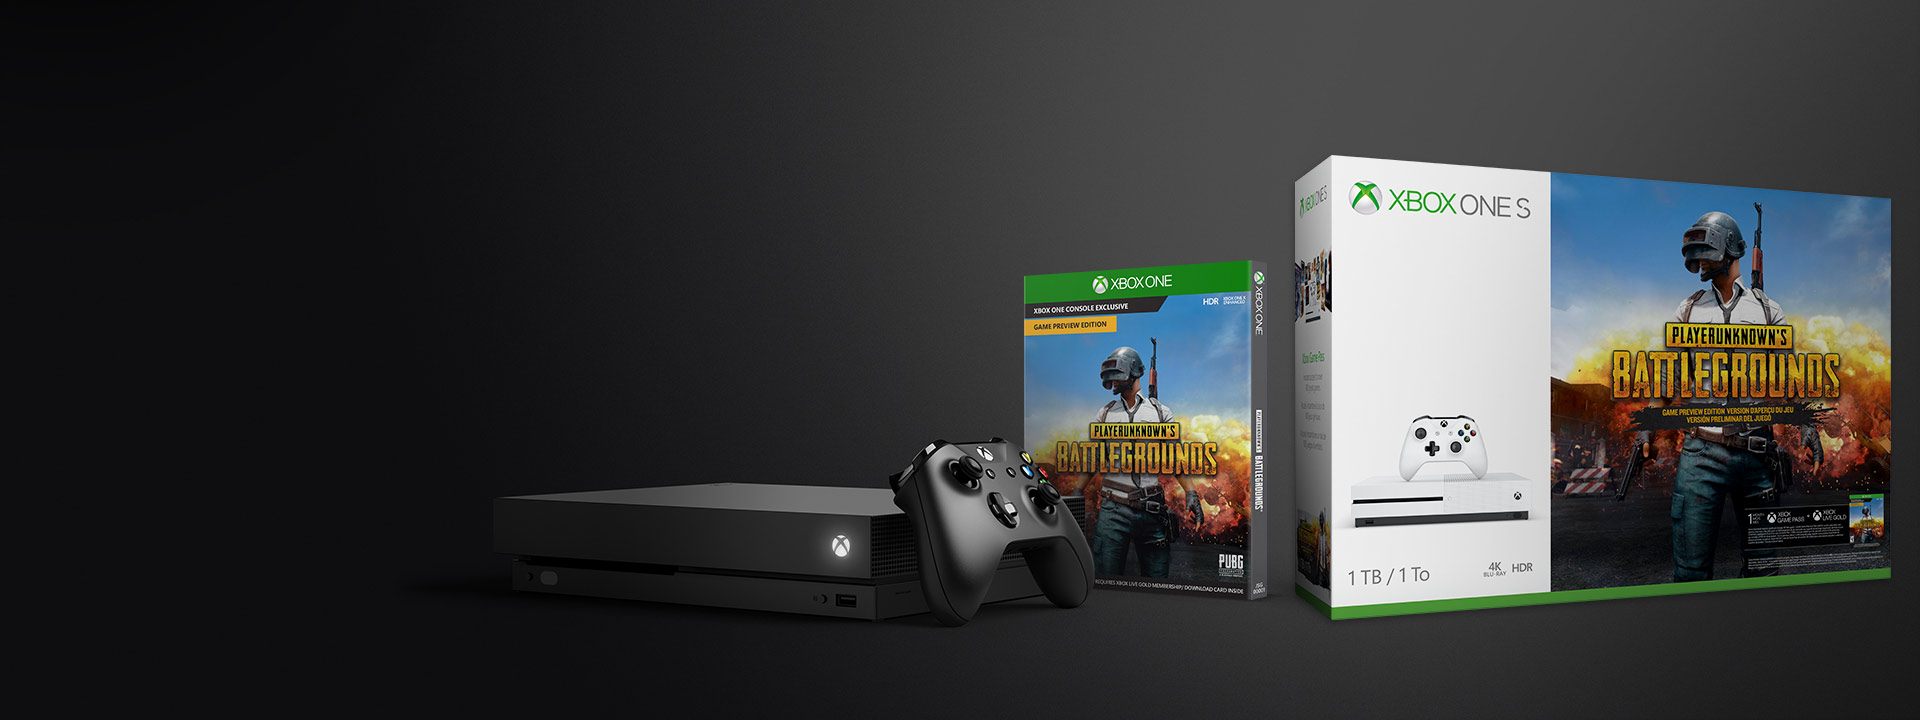 Xbox One X with PLAYERUNKNOWN BATTLEGROUNDS and Xbox One S PLAYERUNKNOWN BATTLEGROUNDS bundle